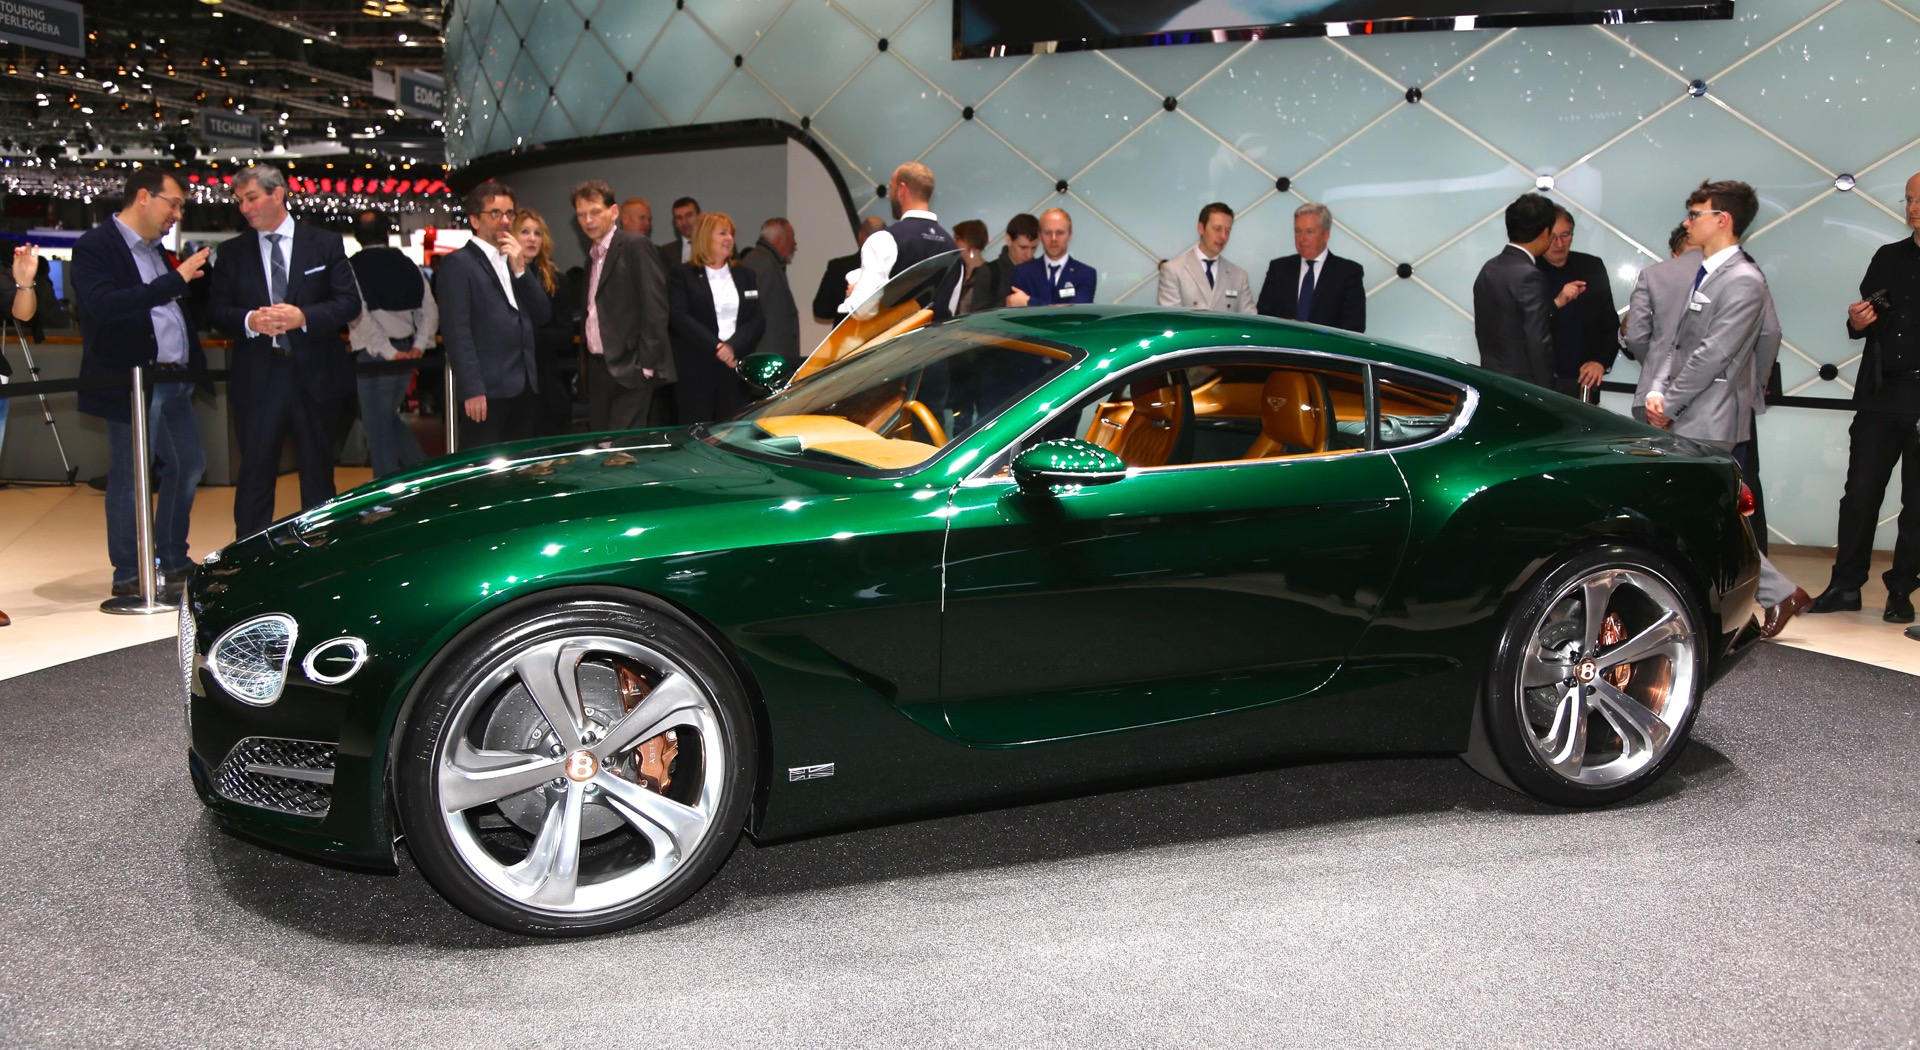 New Exp 10 Sd 6 Concept Hints At Potential Bentley Sports Car Live Photos And Video